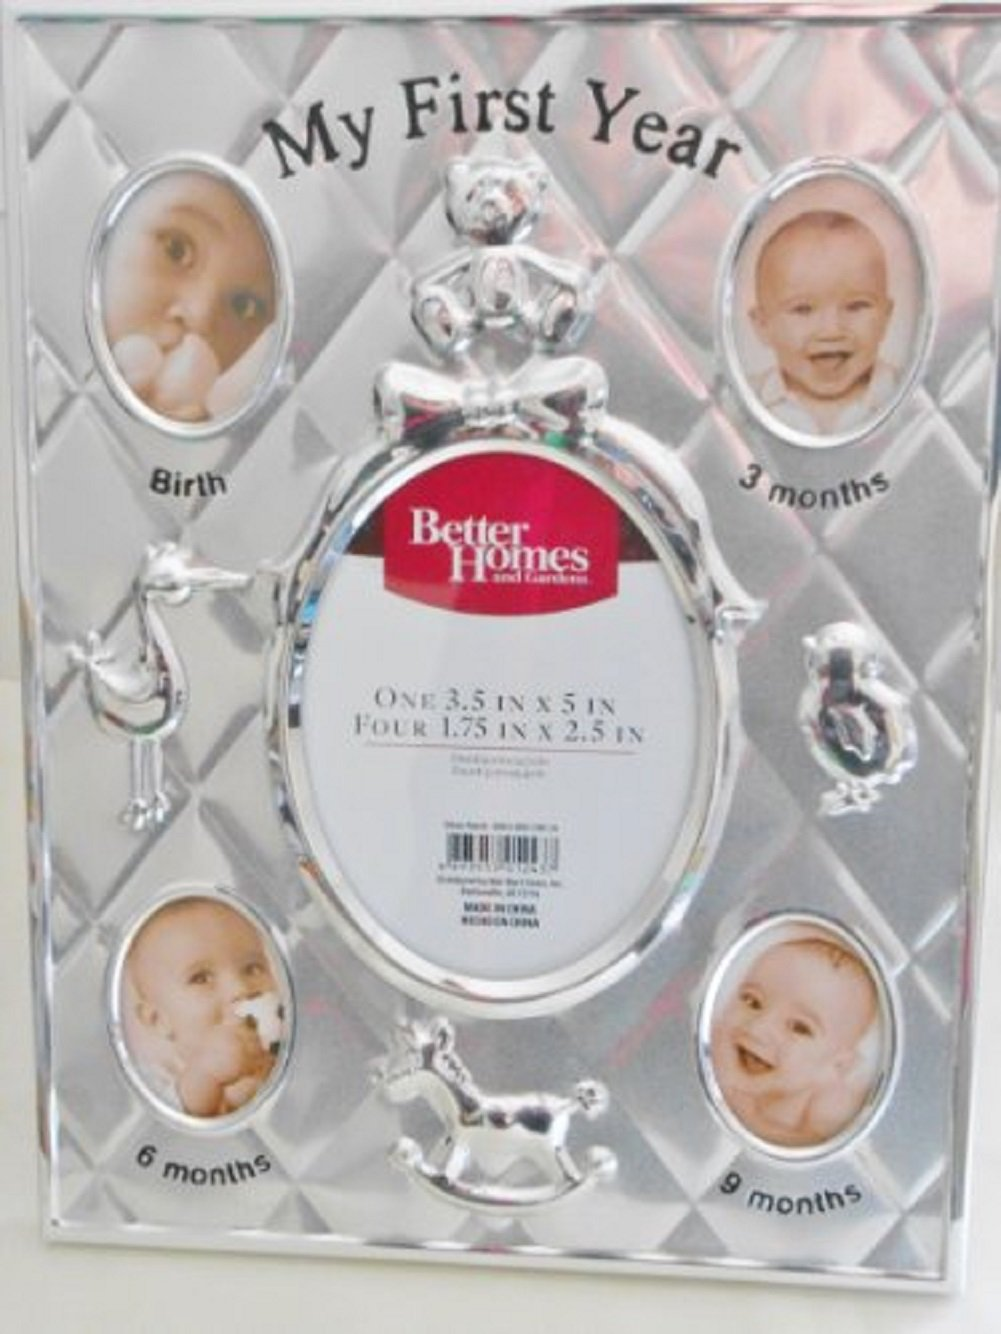 Better Homes & Gardens Silver Finish Baby's My First Year Picture Frame BH13-095-199-14